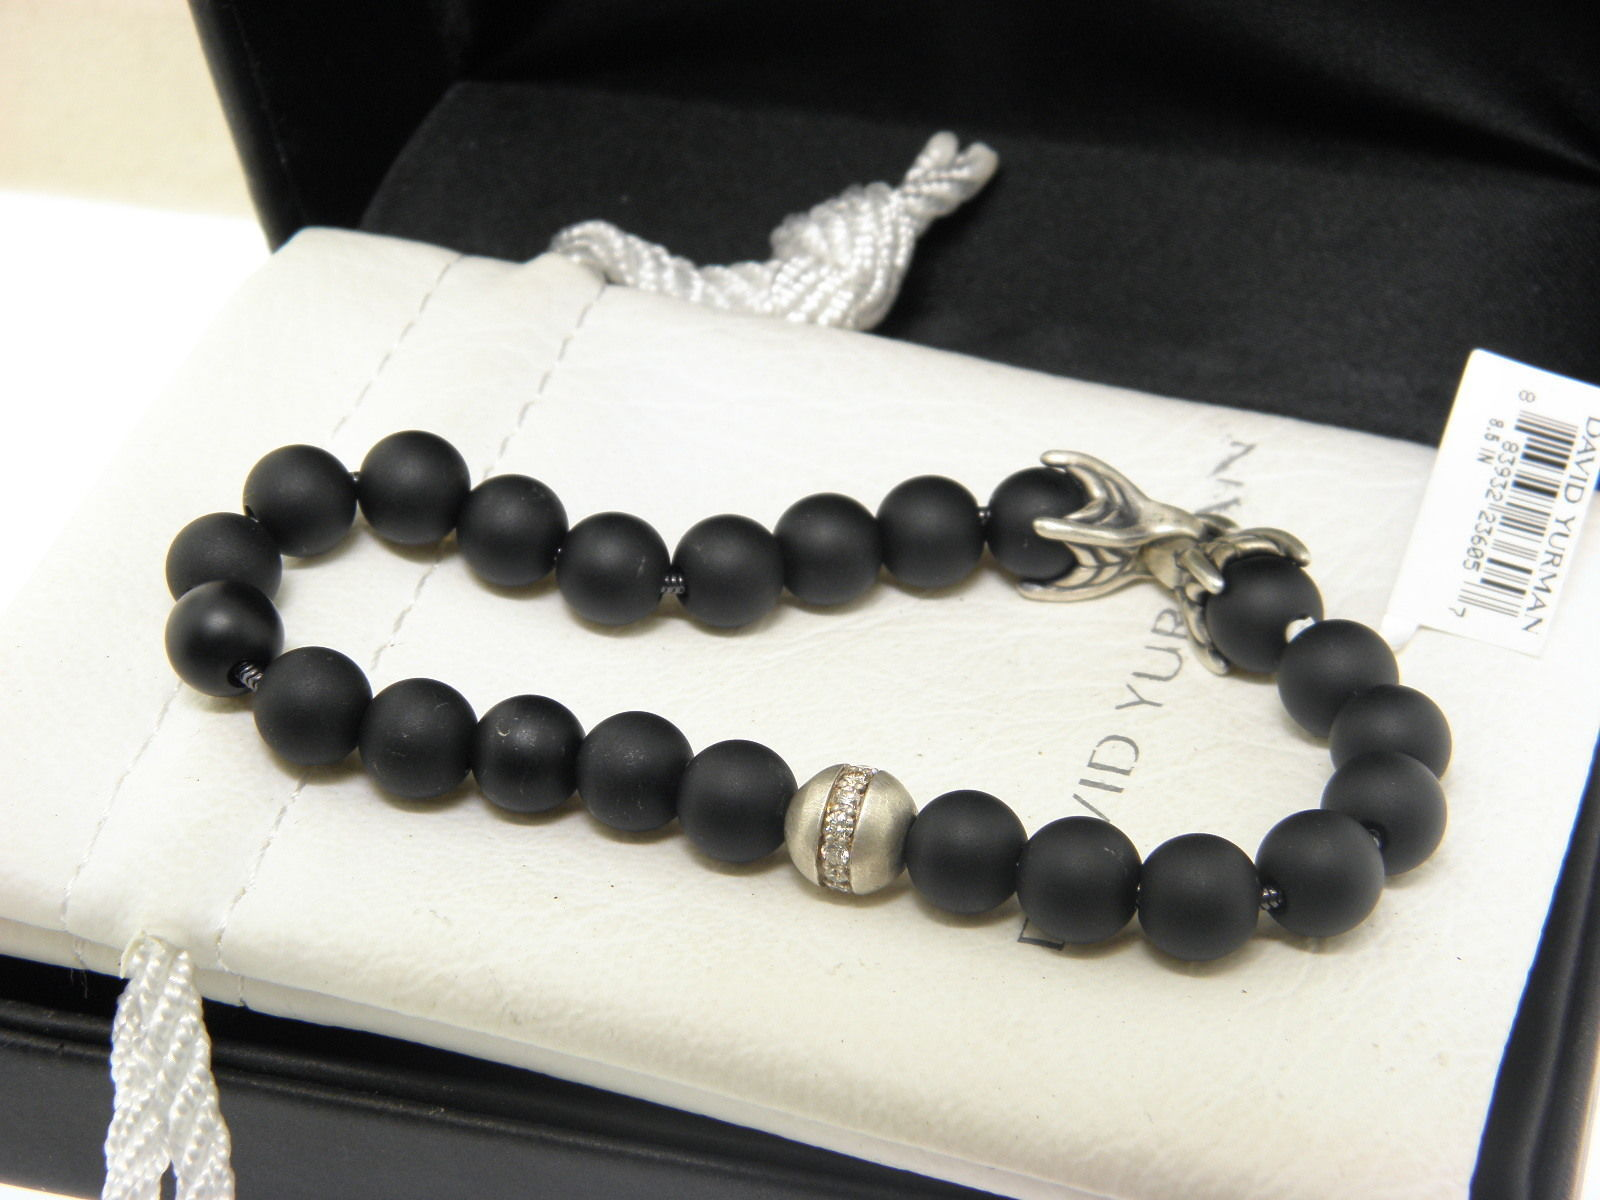 DAVID YURMAN Spiritual Beads Bracelet with Black Onyx and  Diamonds,8.5